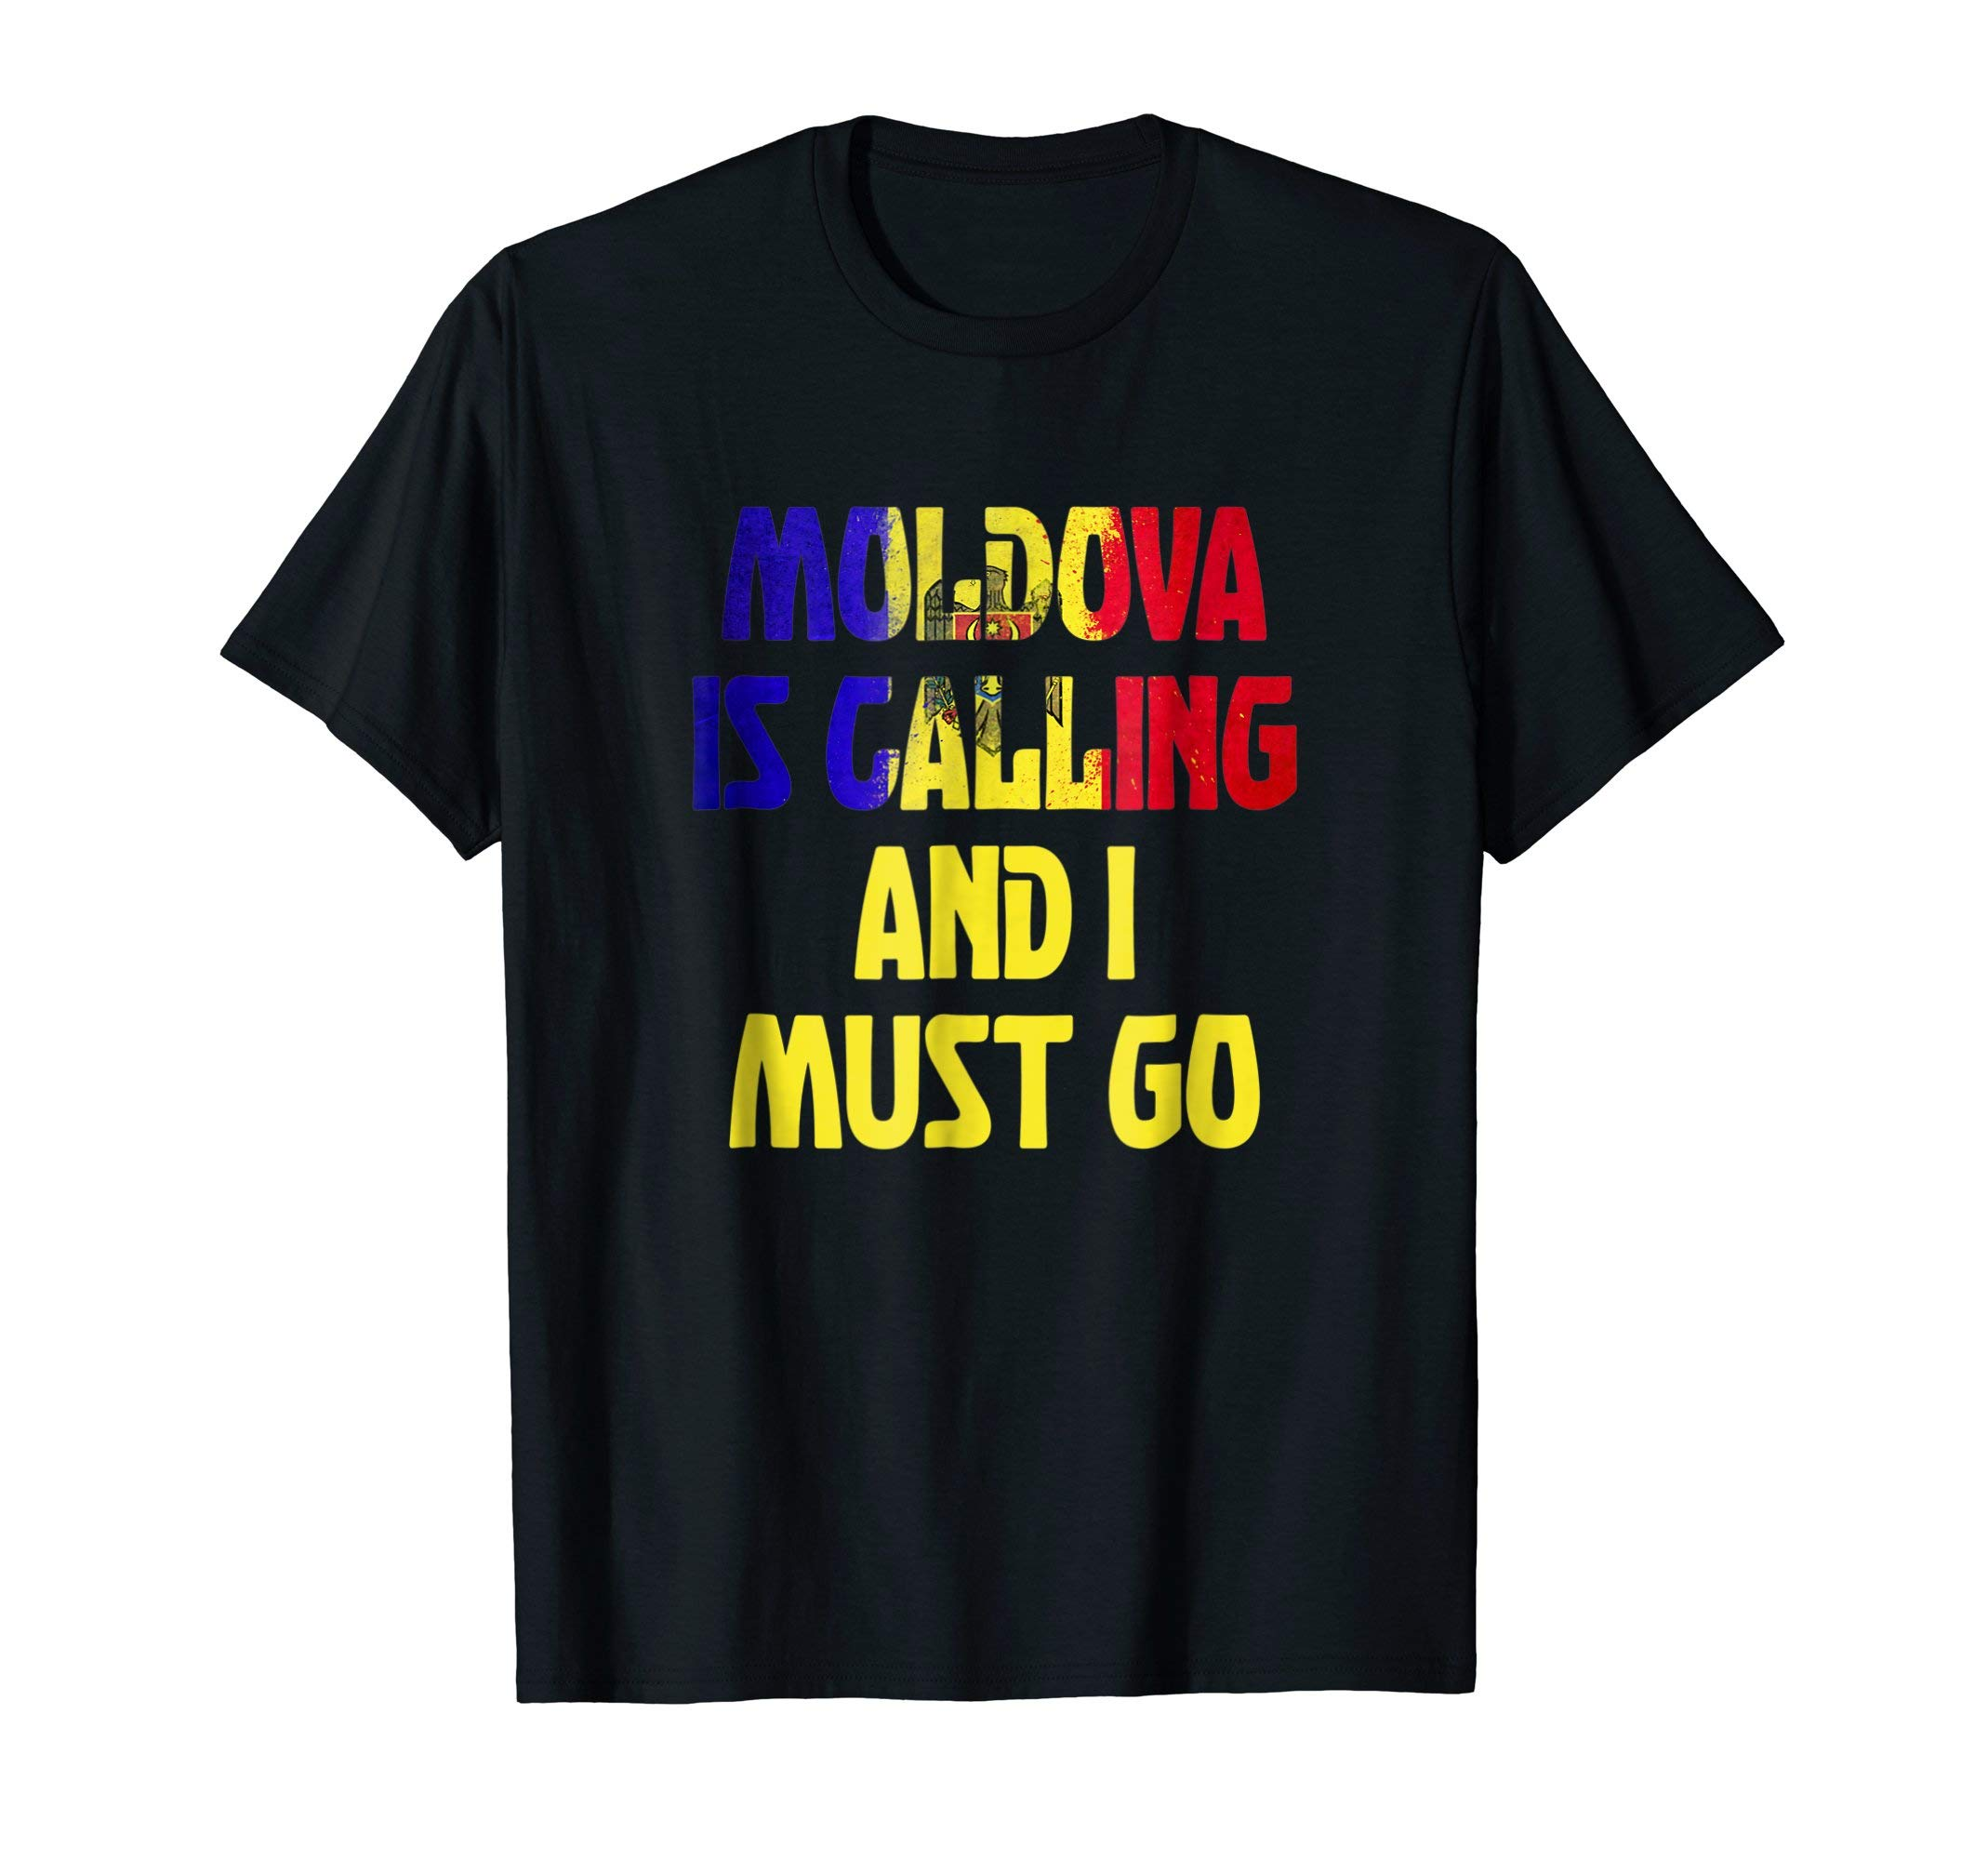 Moldova Is Calling And I Must Go Funny Travel Gift Shirt